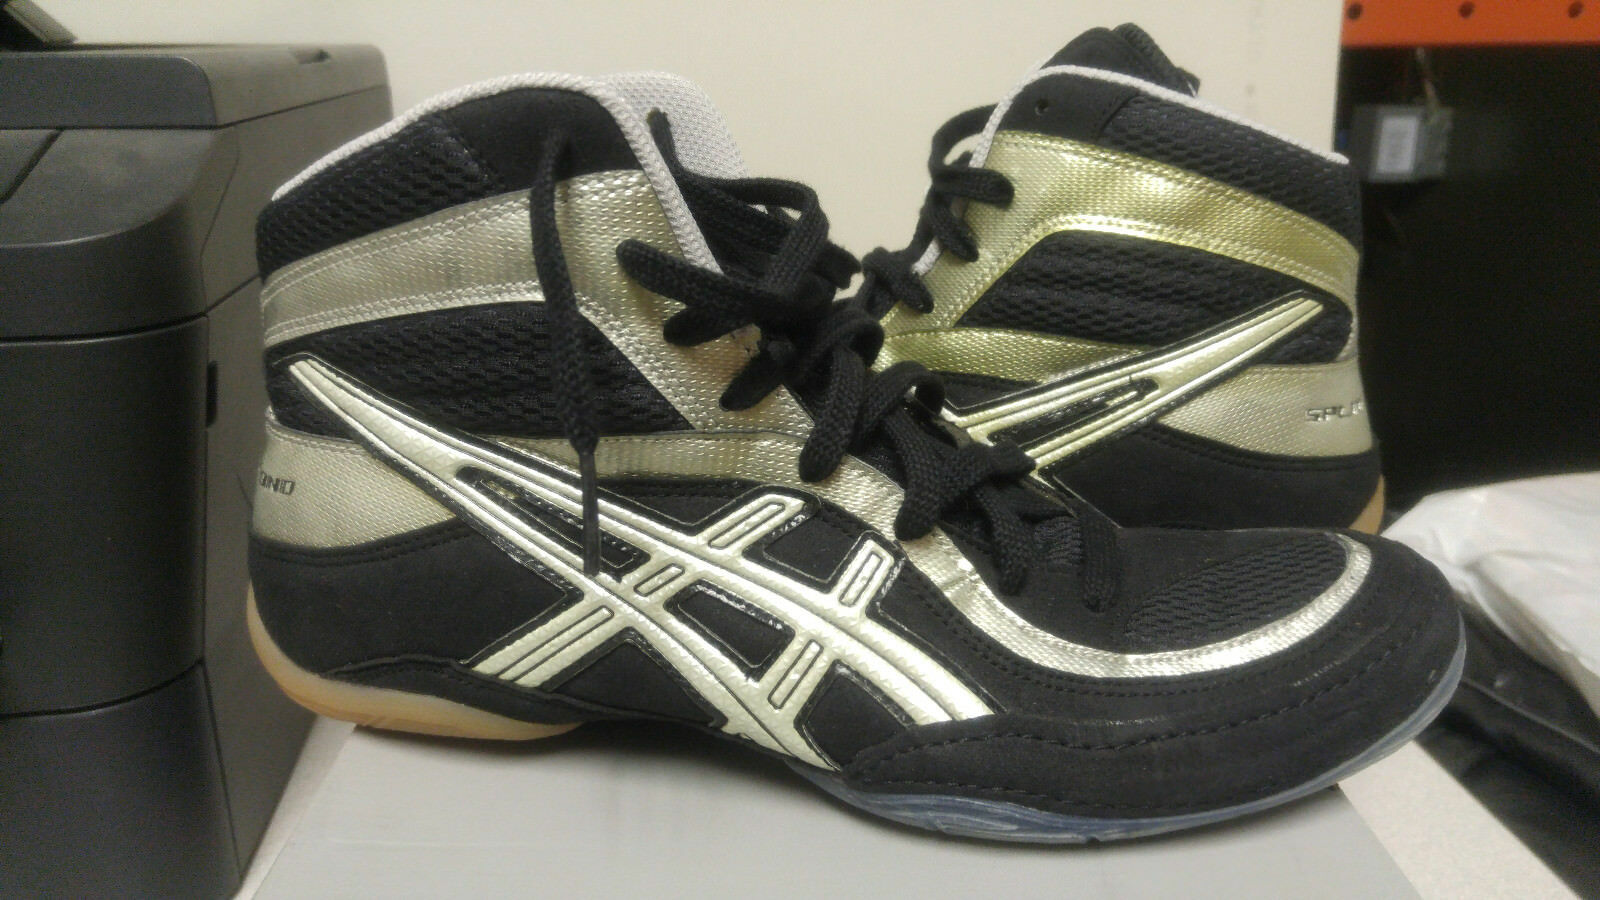 Asics - Split Second 7 - Men's size 10.5 - JY802-9001